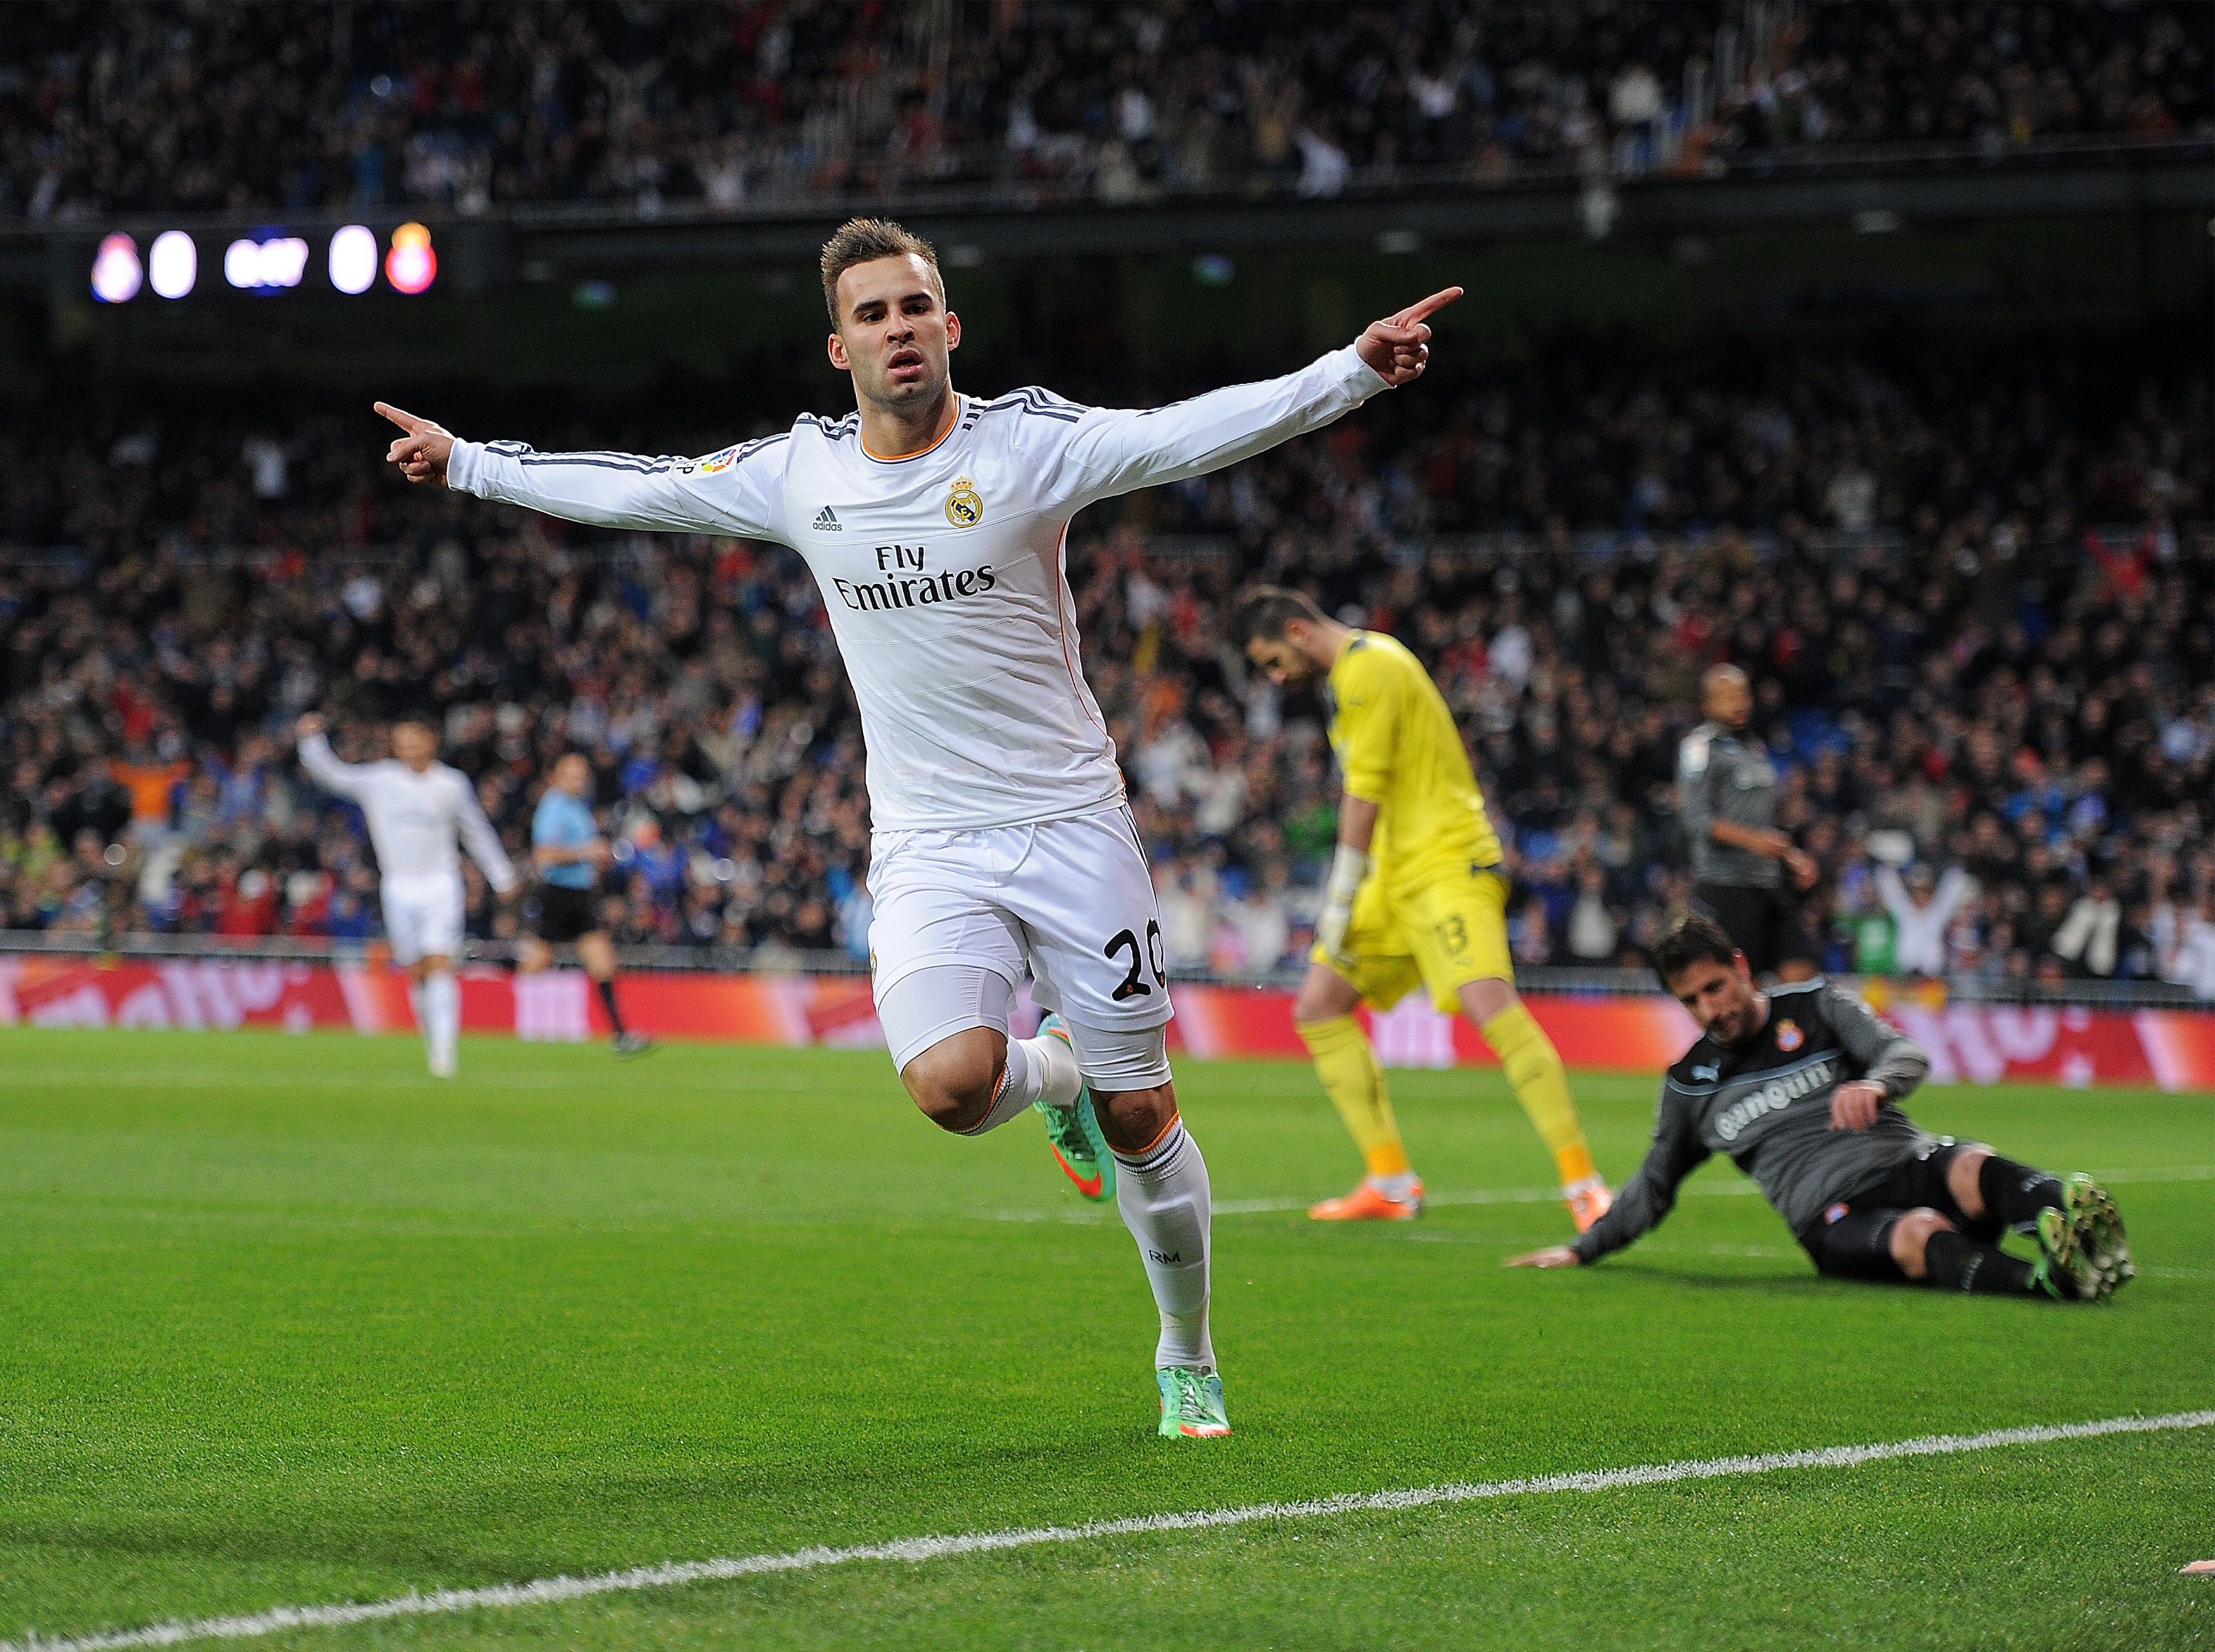 Real Madrid vs. Espanyol: Final score 1-0, Jesé ensures Madrid advance to the semifinals